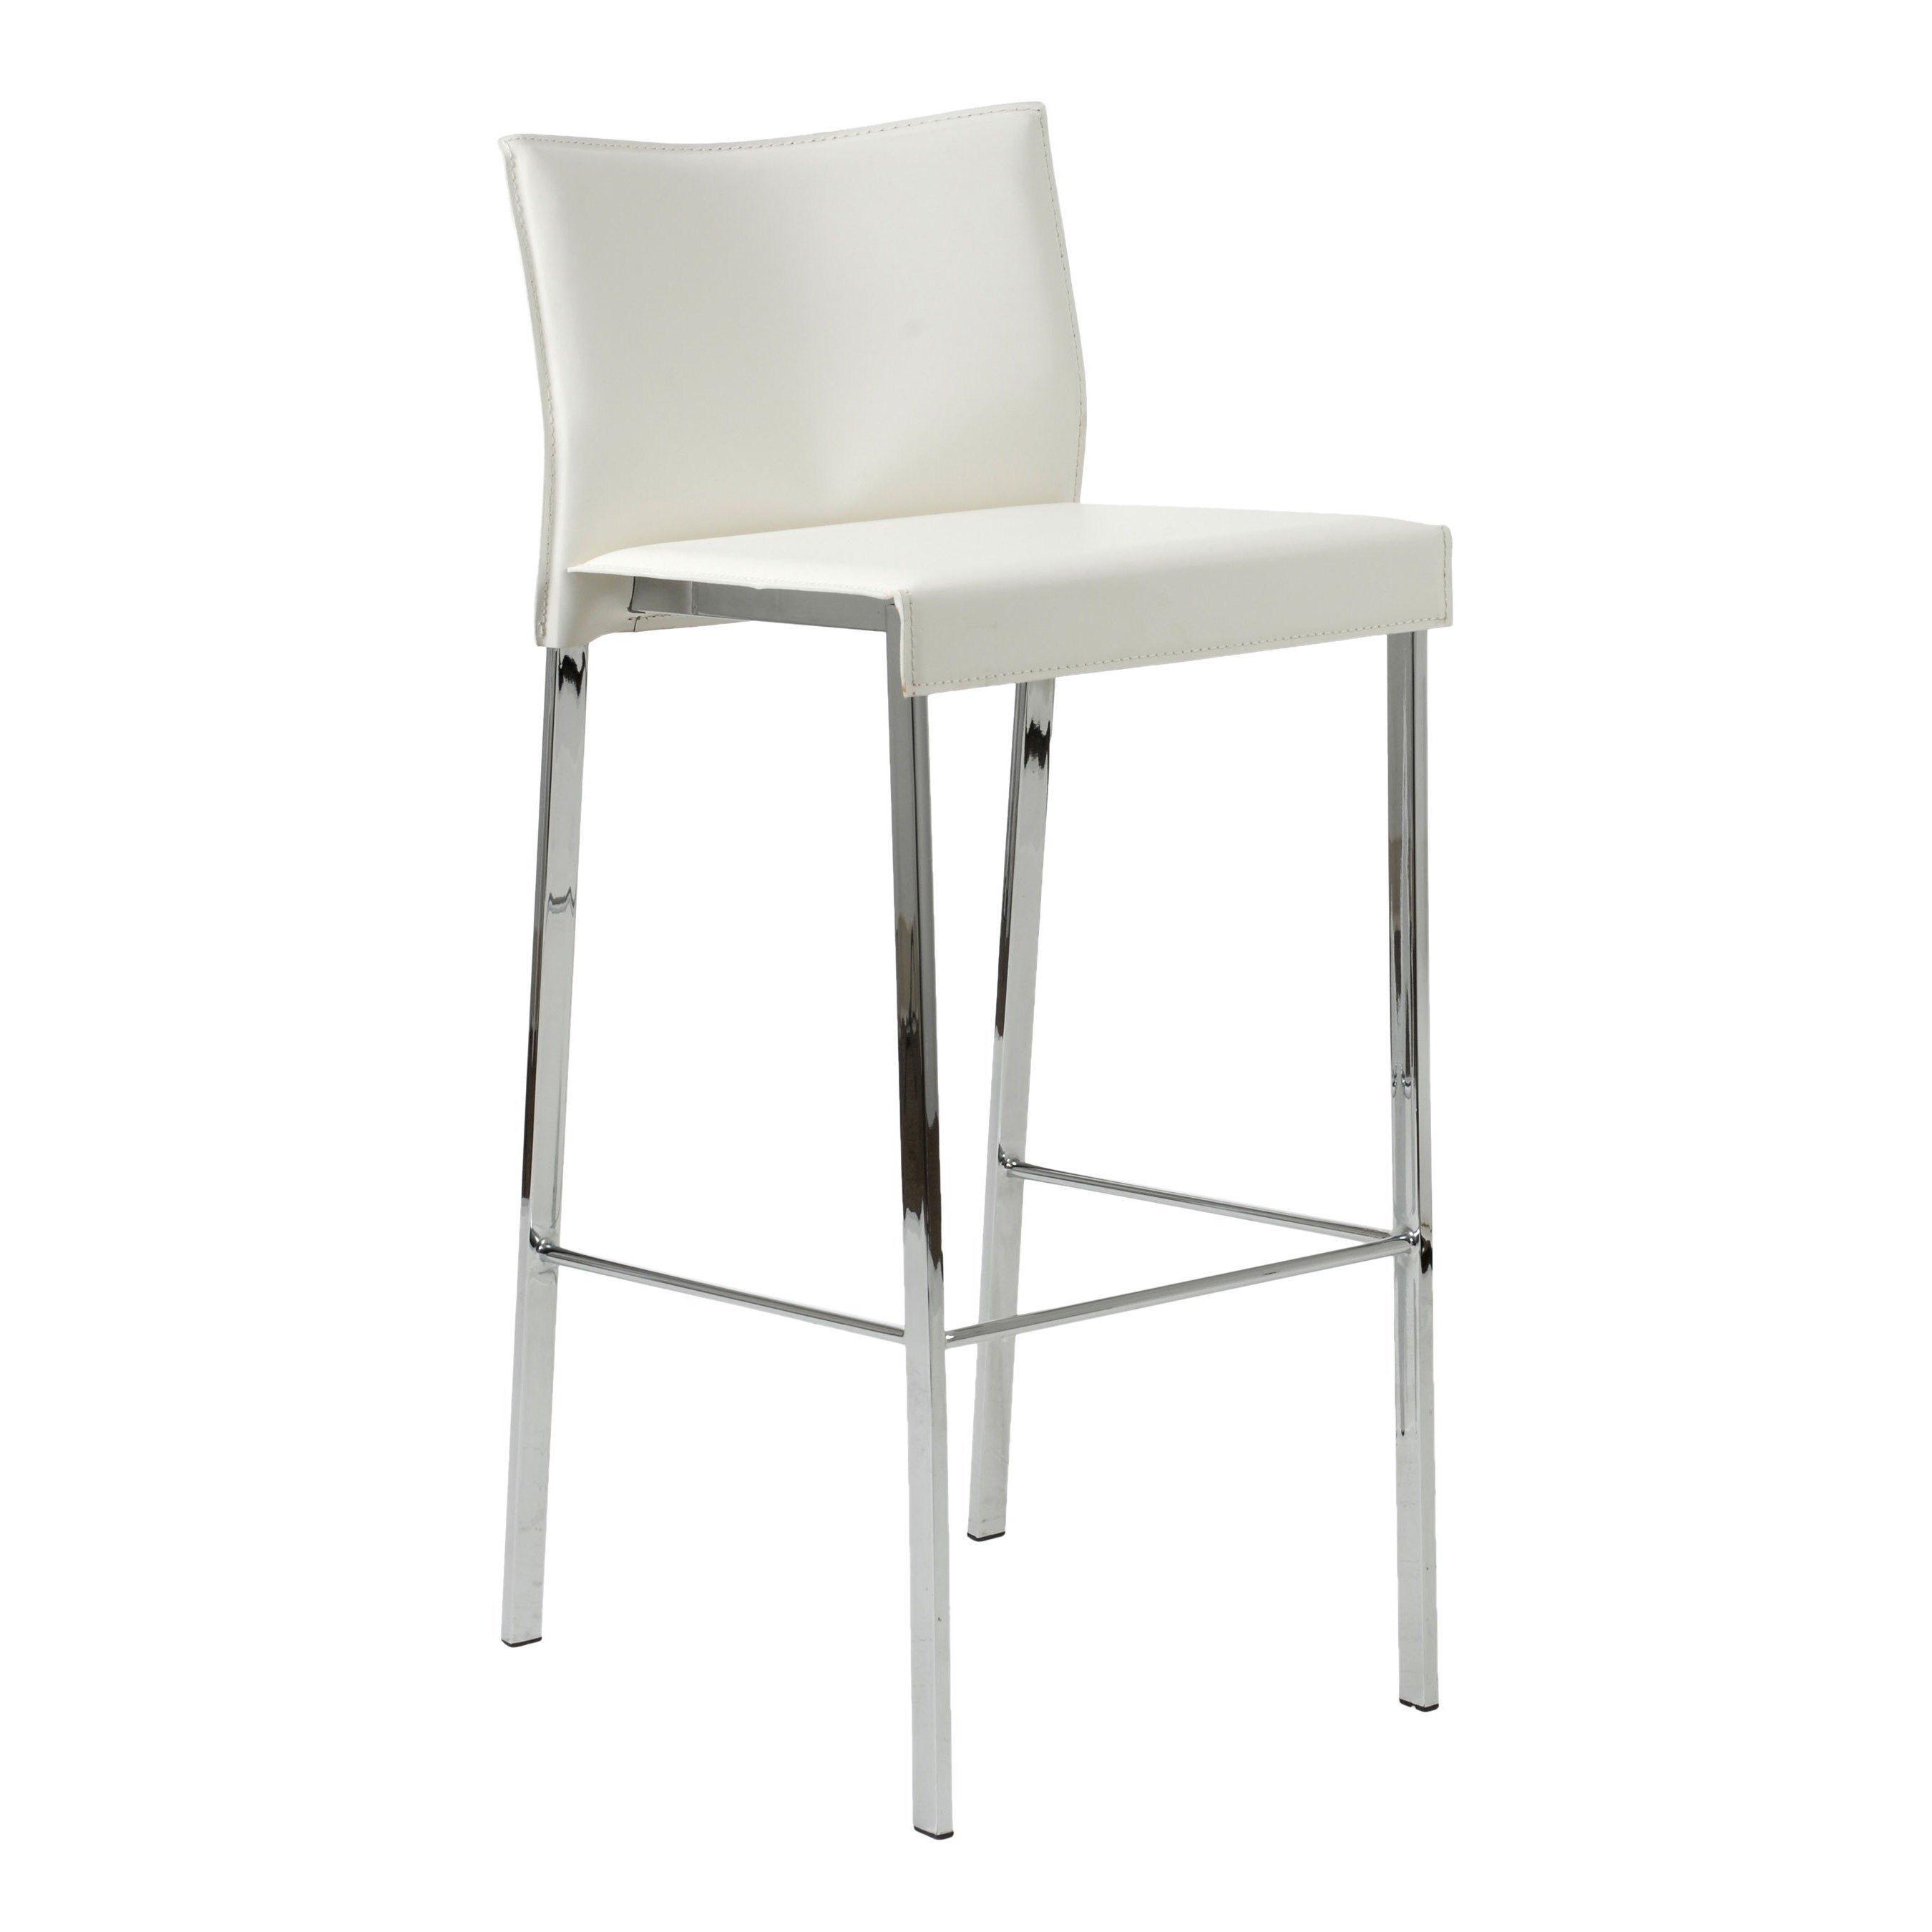 Riley 29 9 Inch White Leather Chrome Bar Stool Set Of 2 Free Shipping Today 10670329